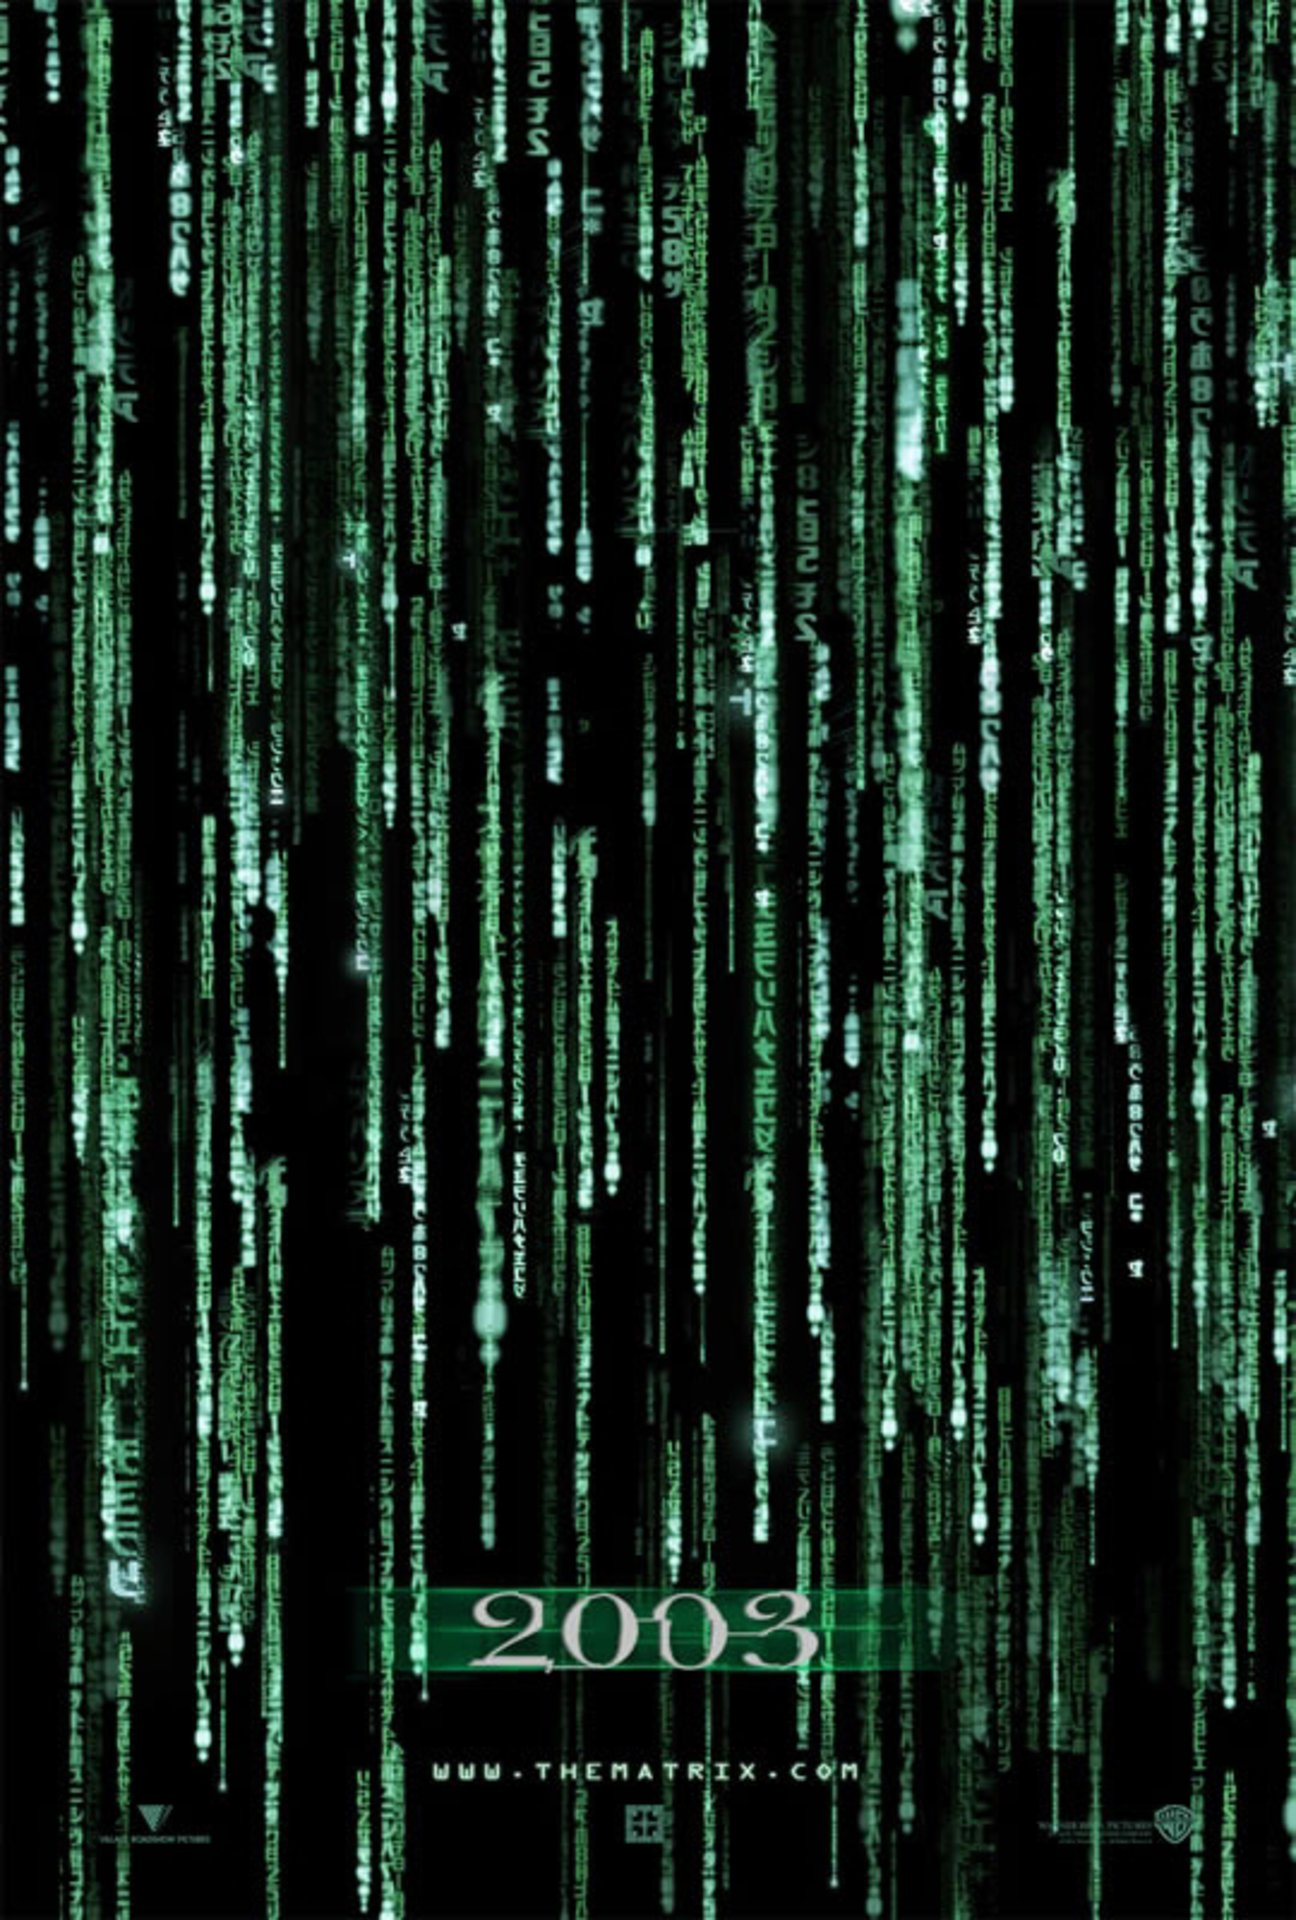 an analysis of the movie matrix reloaded Movie review and analysis of the matrix reloaded (2003) and the animatrix (2003), starring keanu reeves, carrie-anne moss, and lawrence fishburne directed by the wachowski bros.